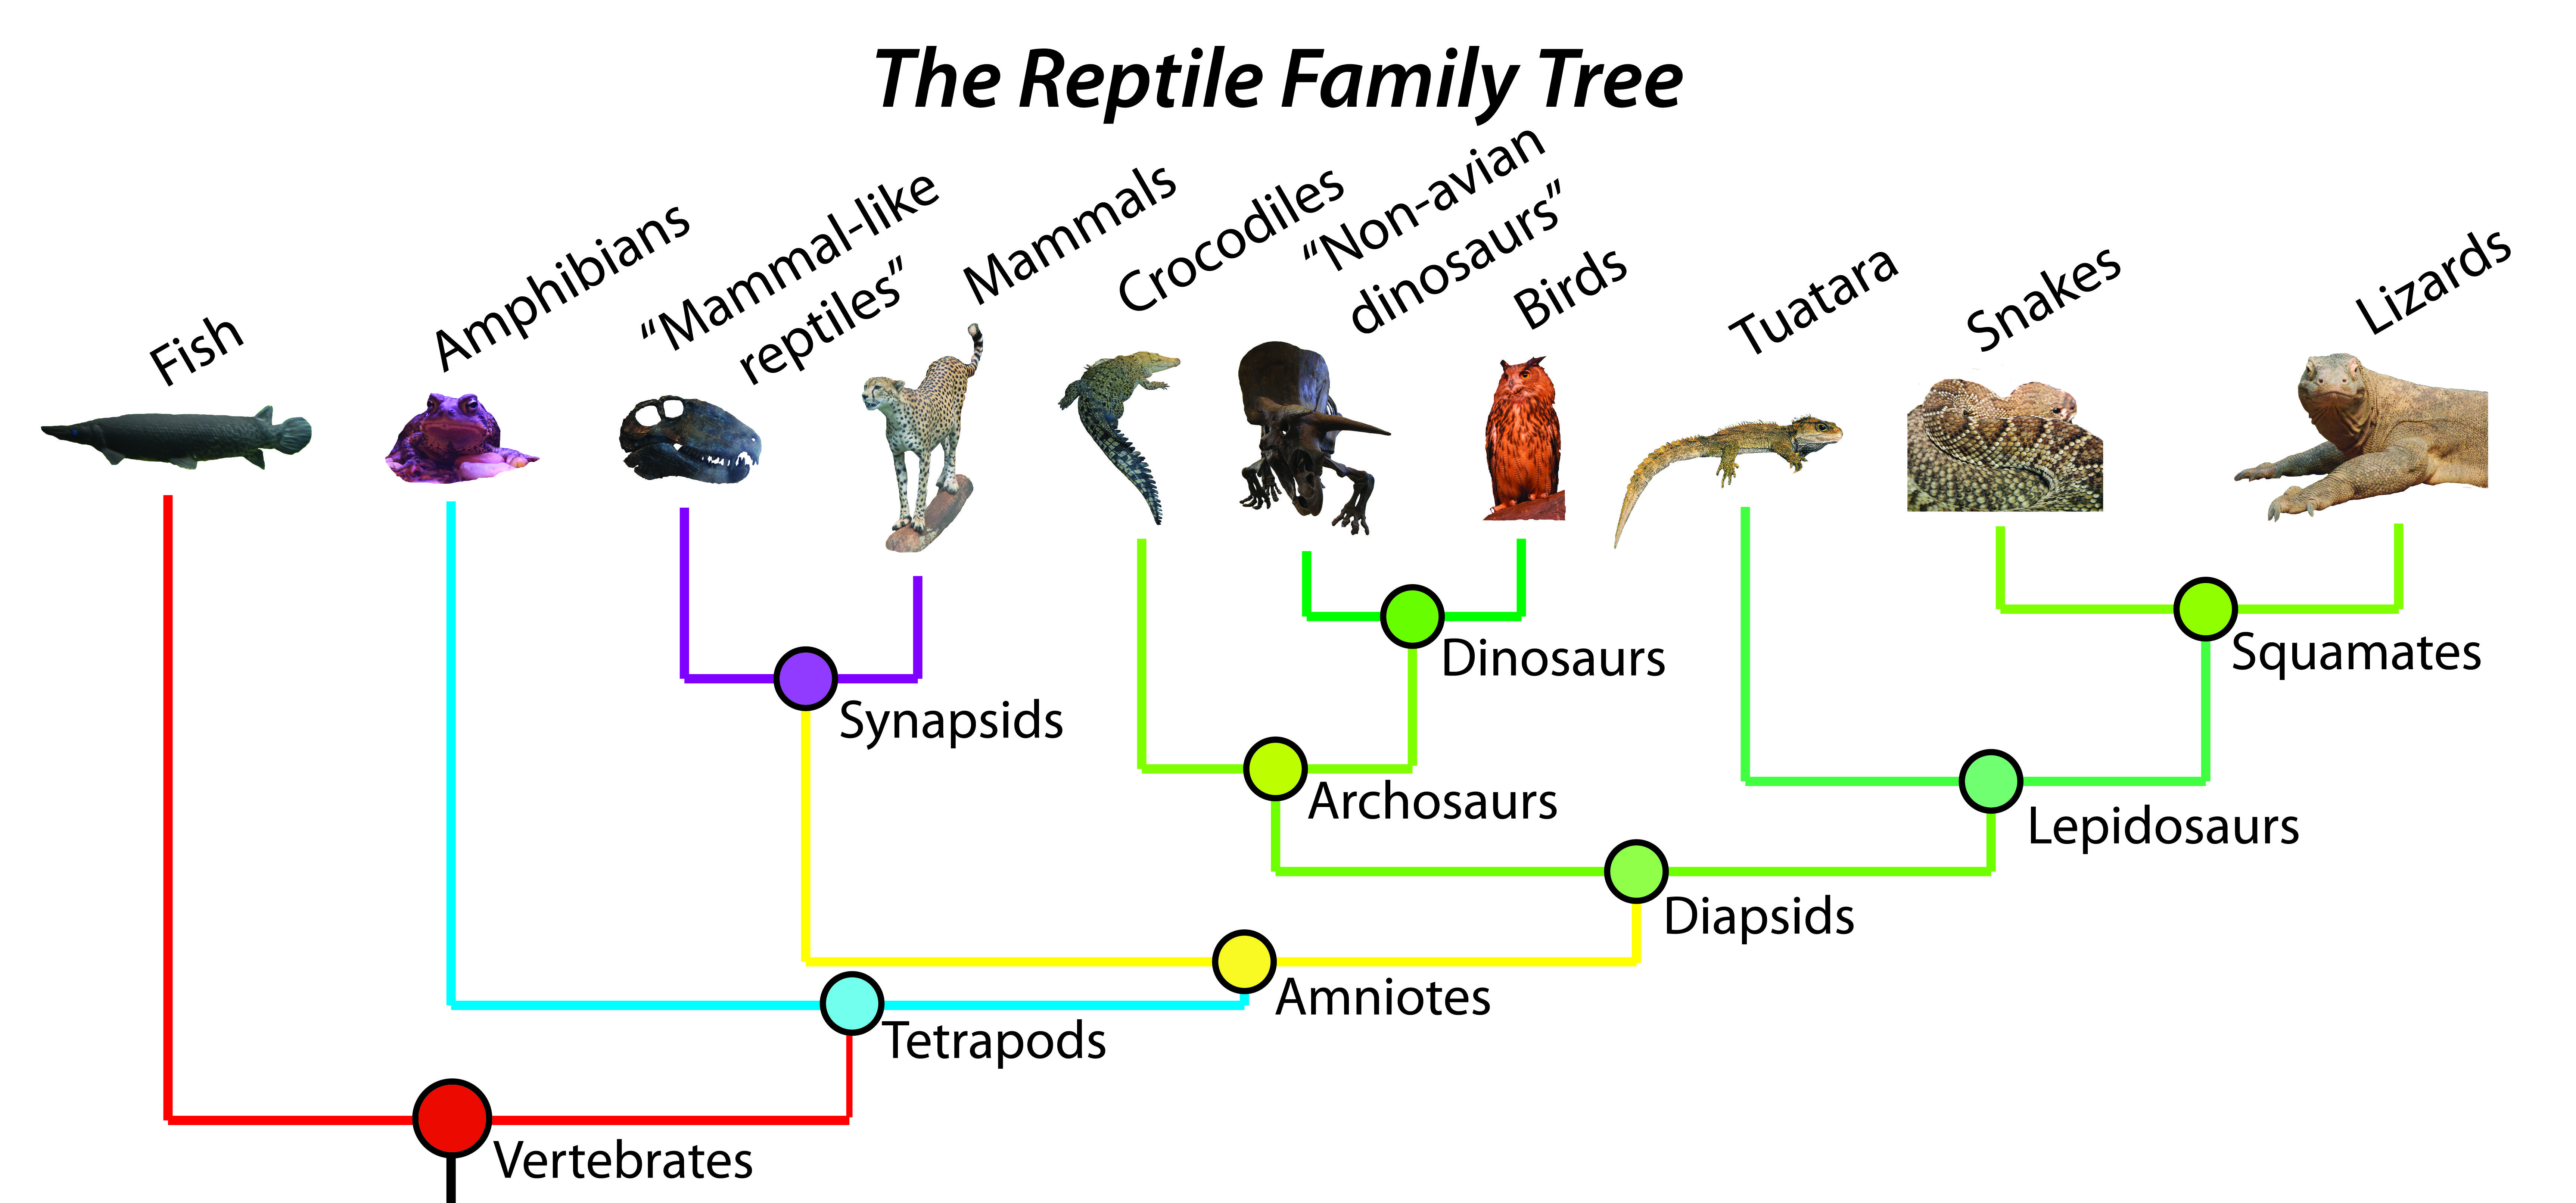 The Reptile Family Tree